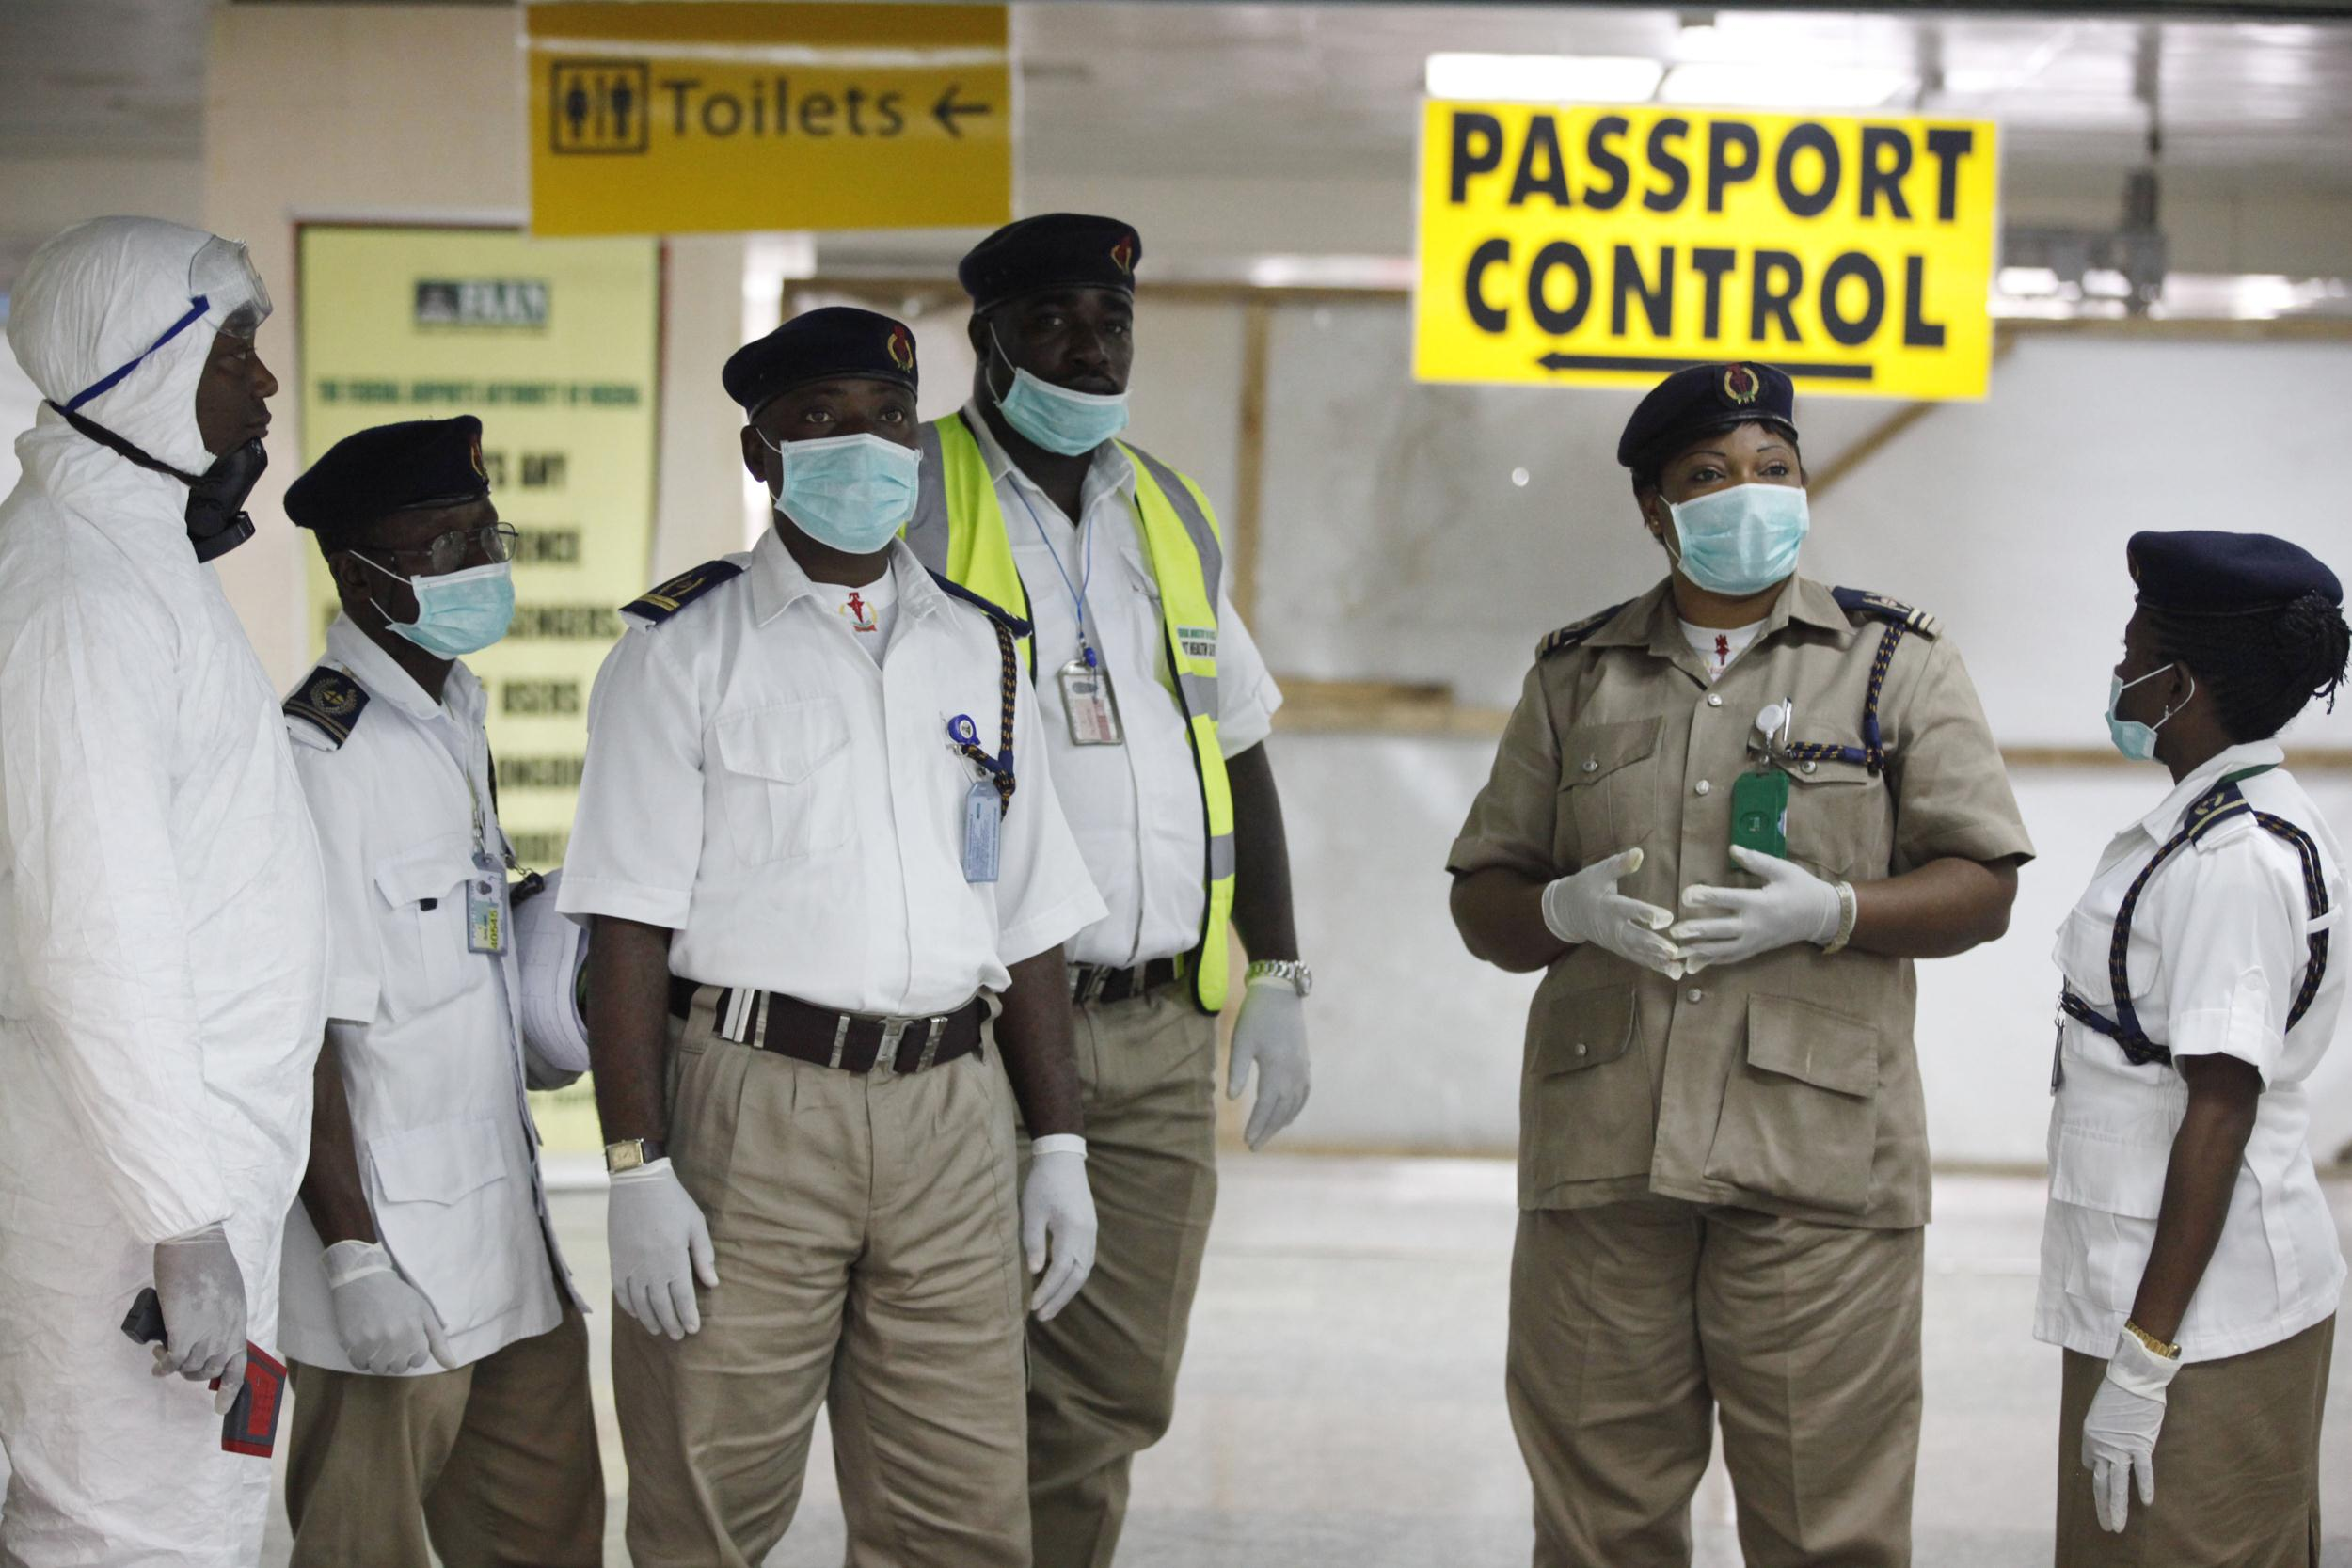 Image: Nigeria health officials wait to screen passengers at the airport in Lagos.